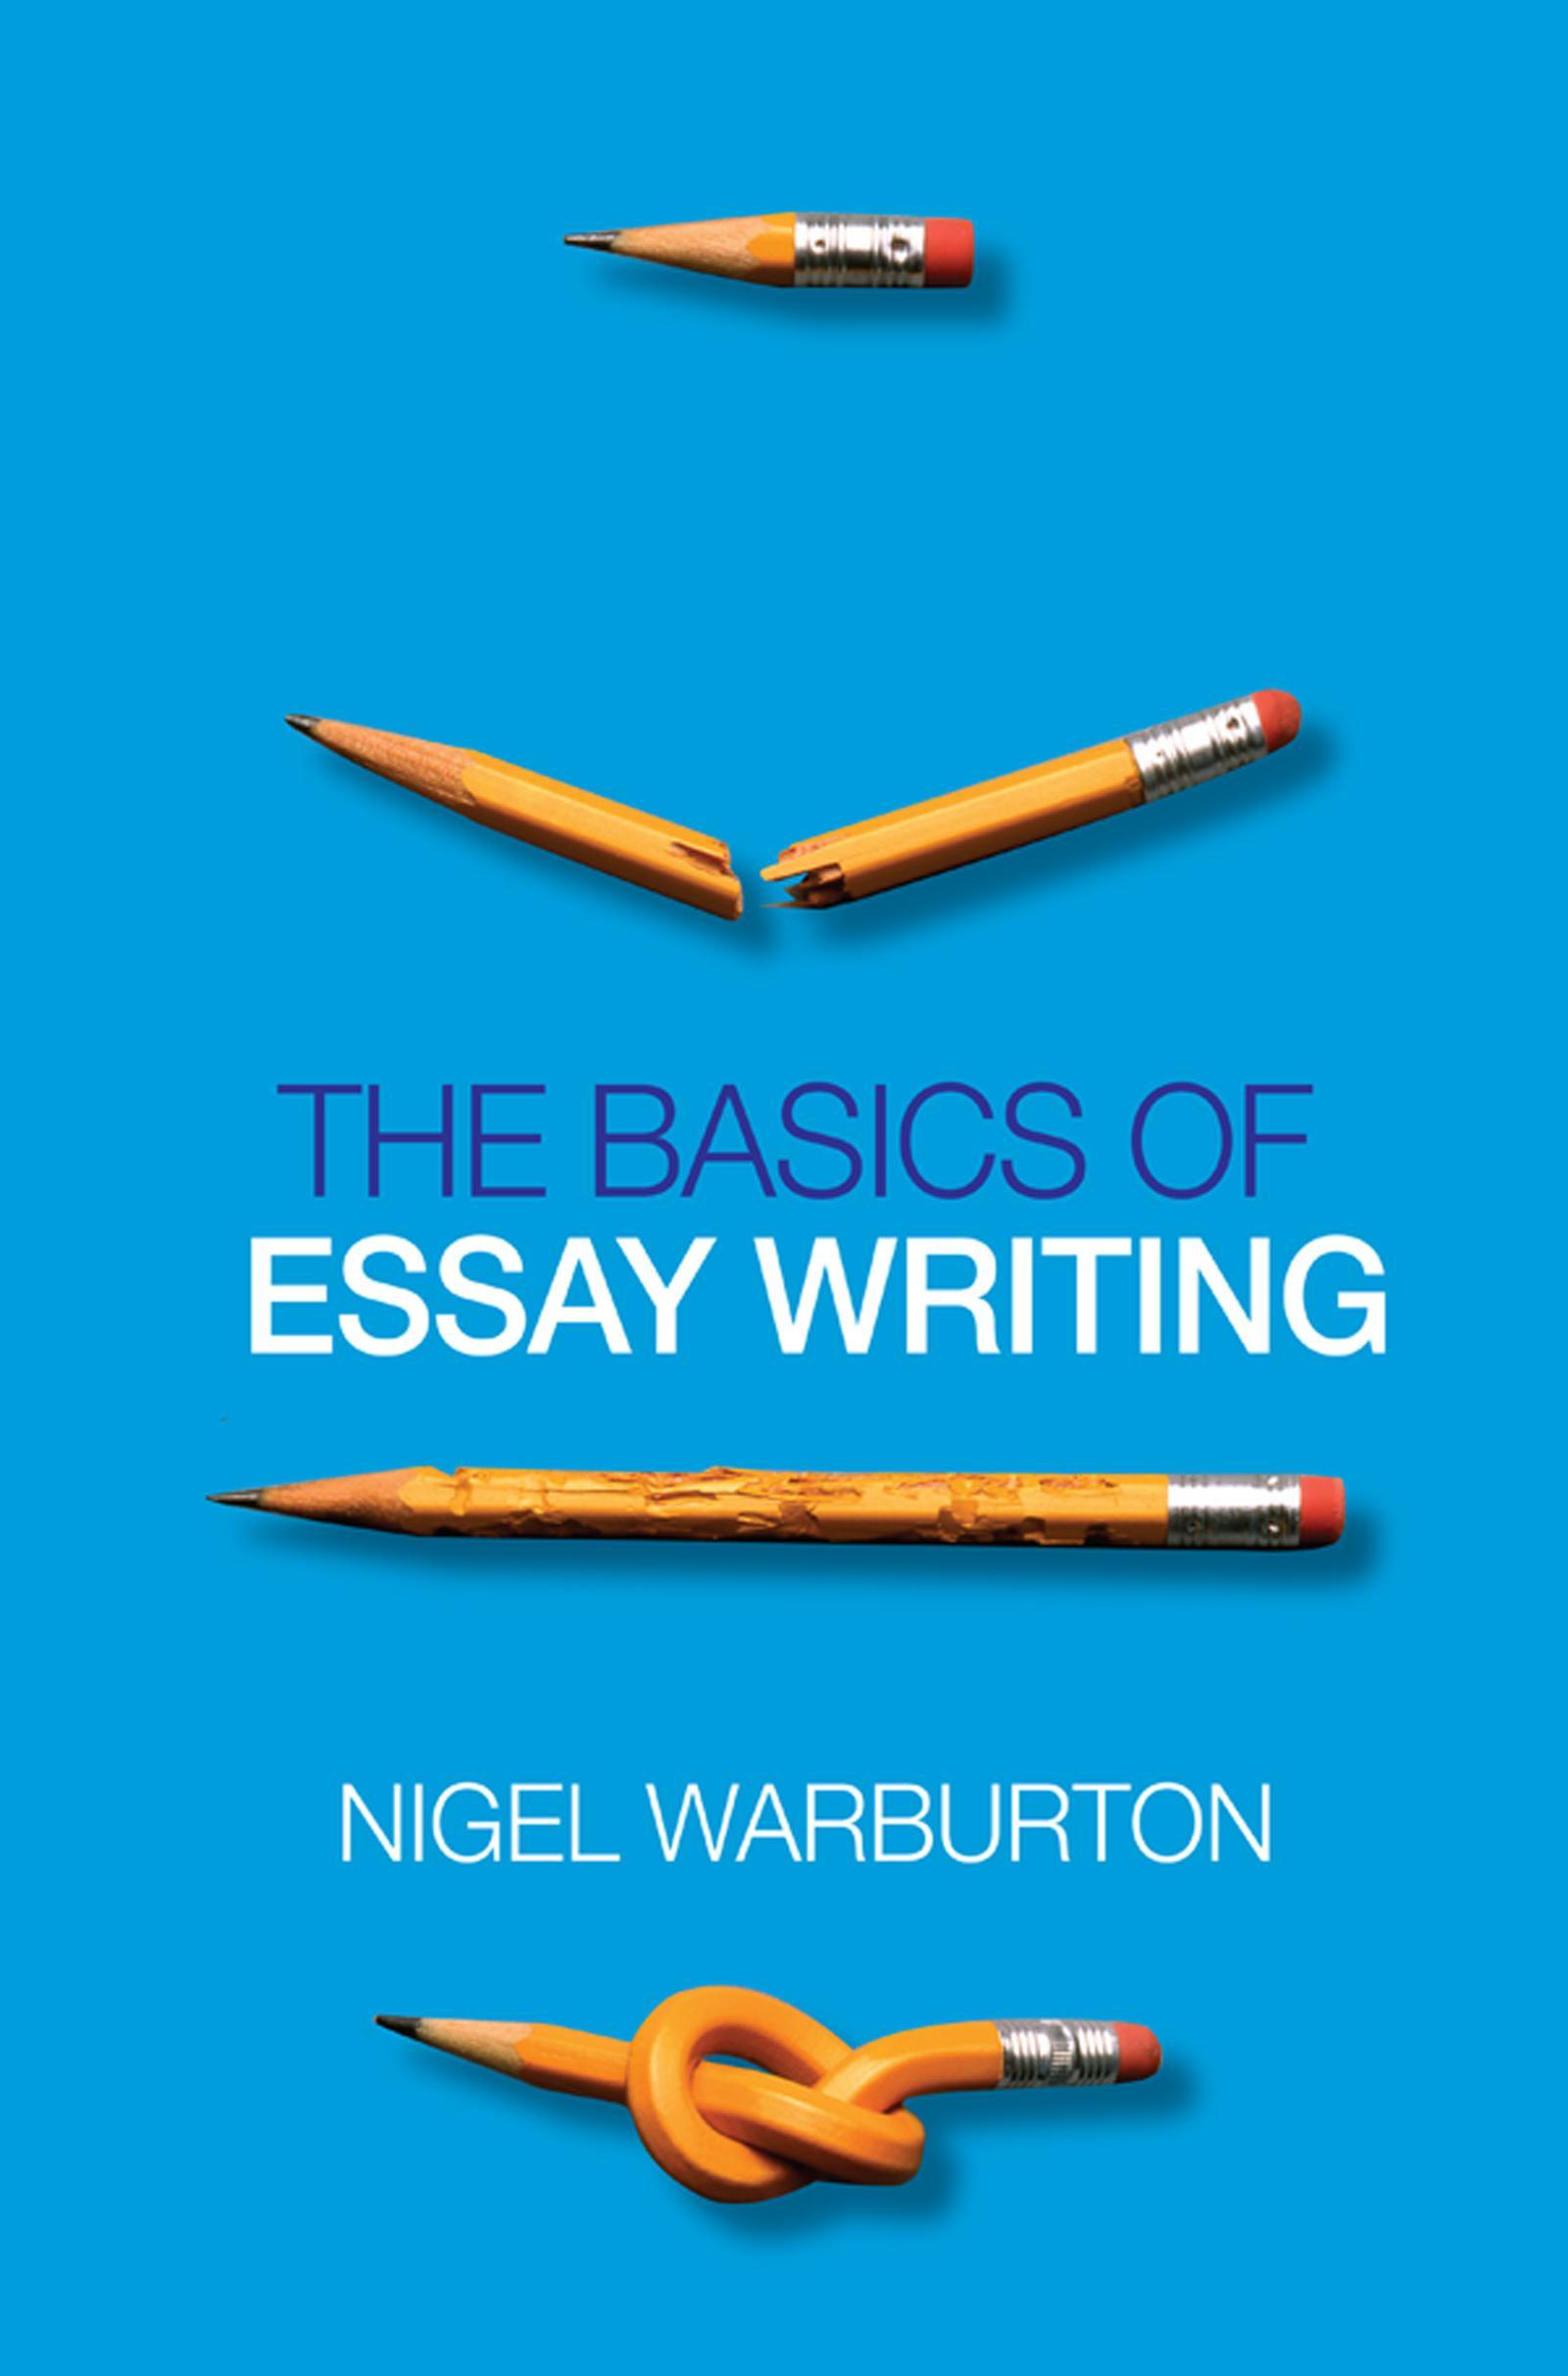 Full Size of The Basics Of Essay Writing Ebook Jetzt Bei Weltbild Pay Free Editor Paper Rubric For